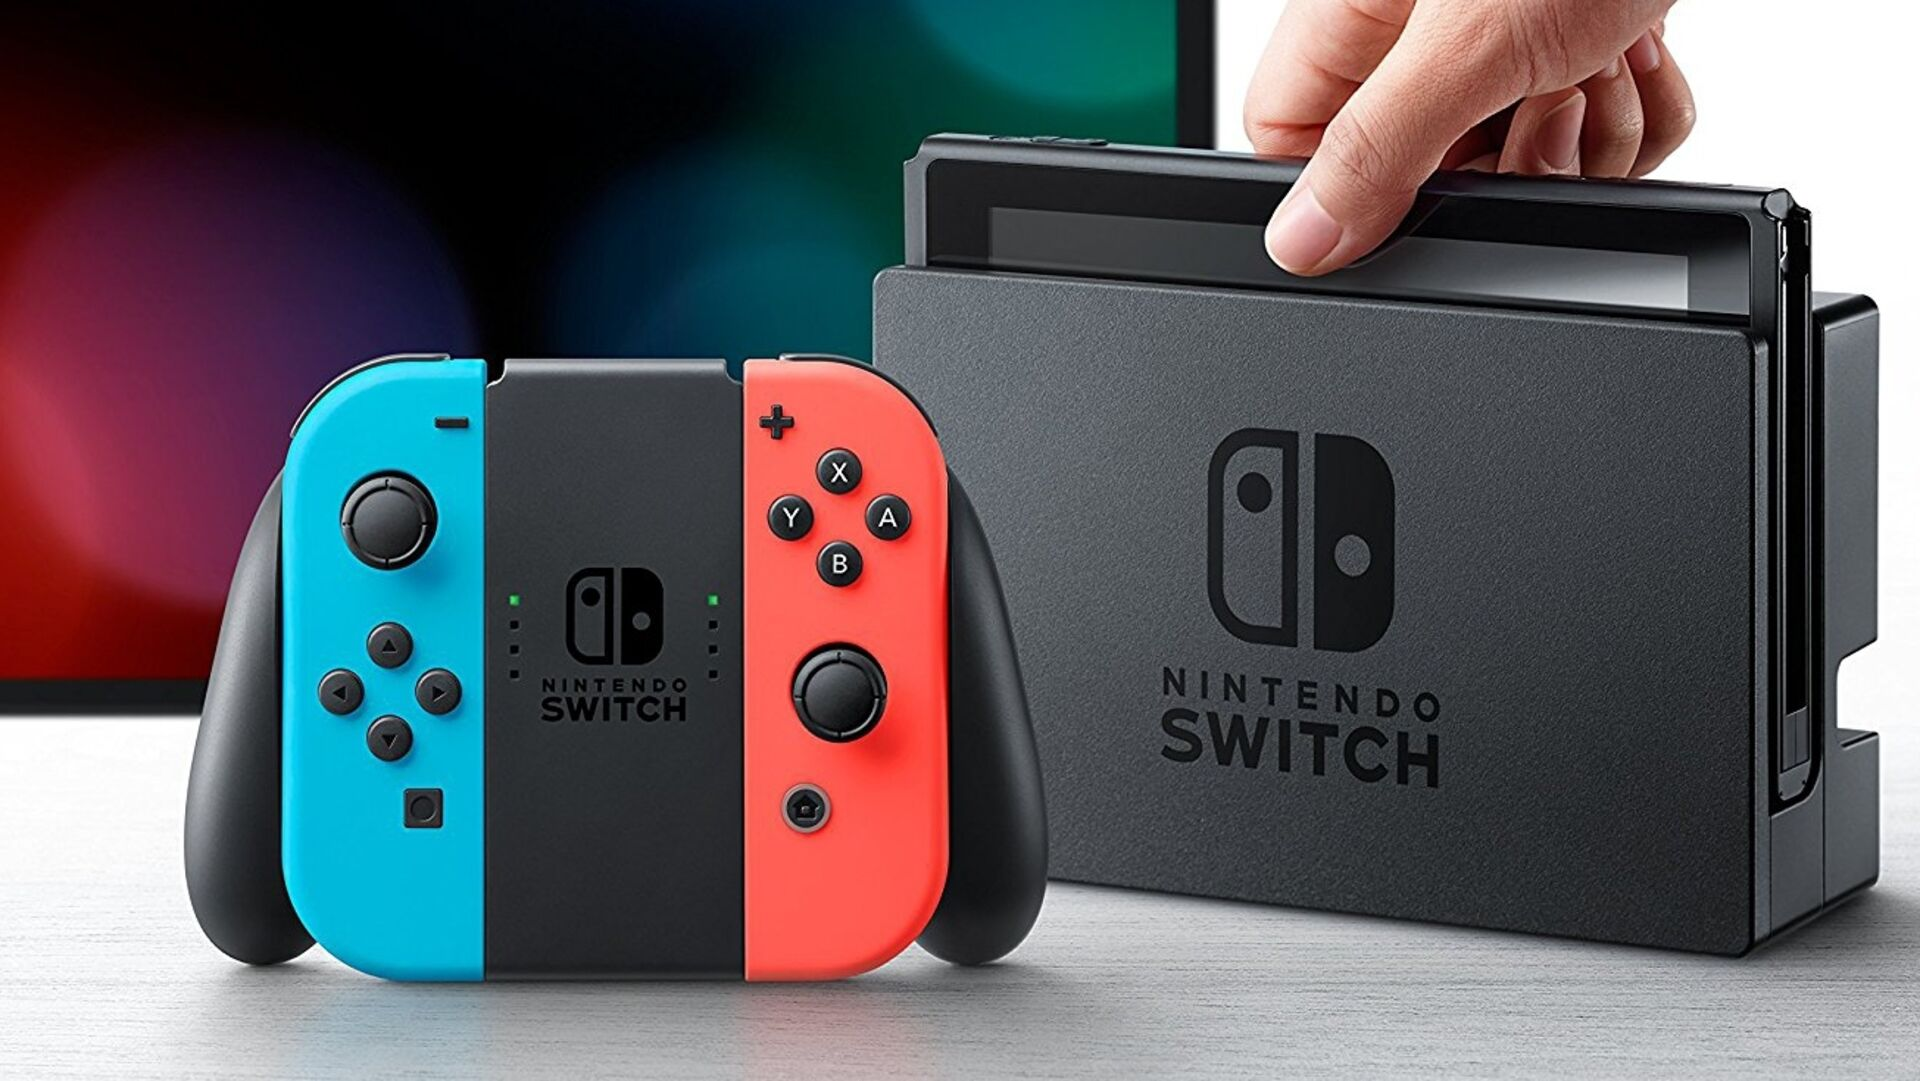 Switch hacked: unpatchable exploit is a security nightmare